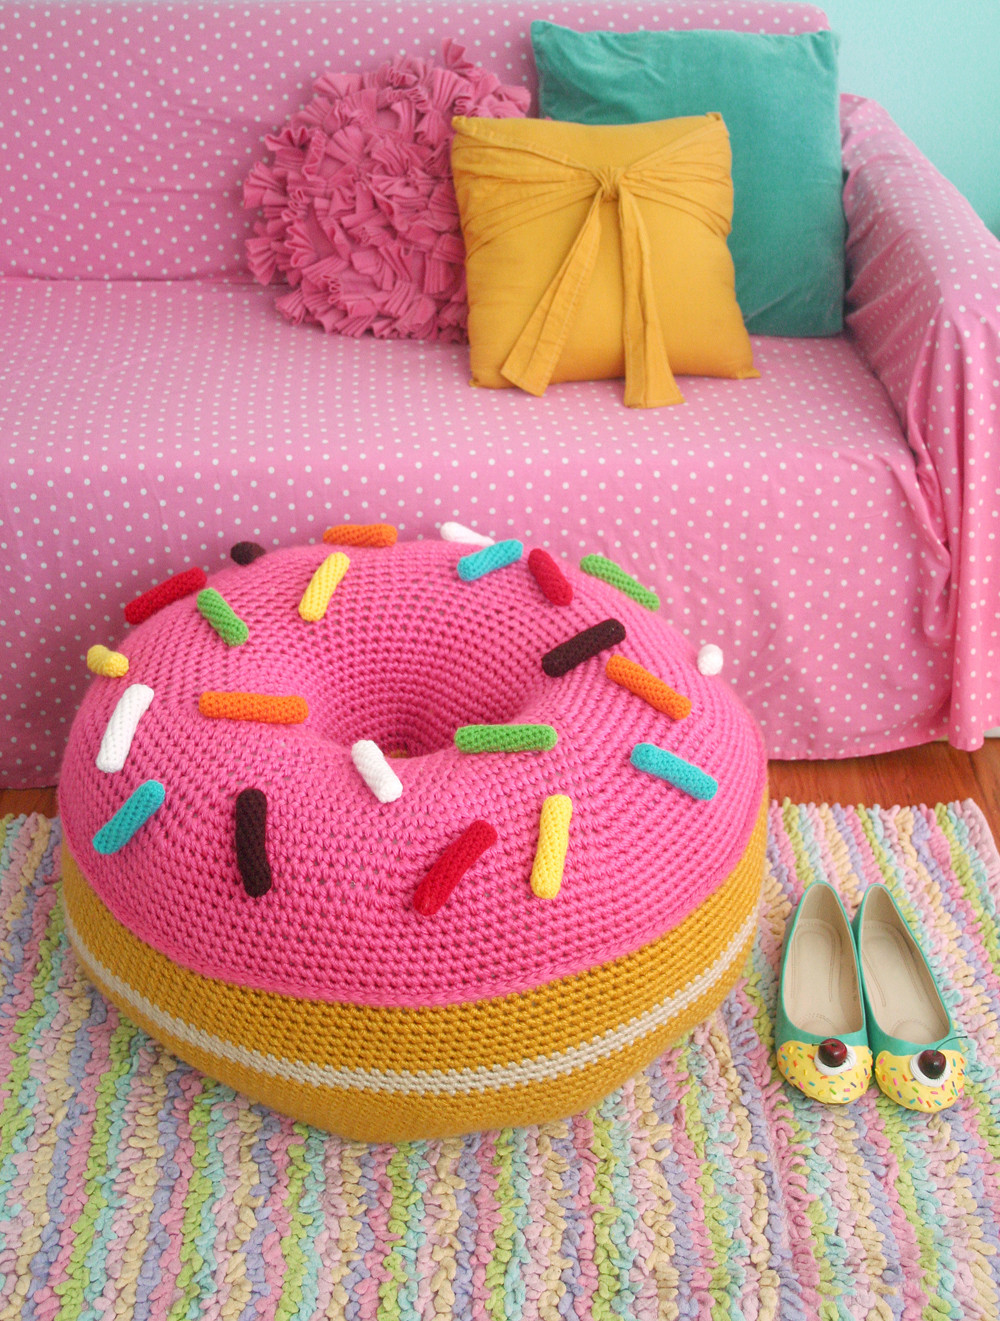 Cushion Patterns Elegant Crochet A Donut Floor Cushion From Twinkie Chan S Of Lovely 43 Images Cushion Patterns